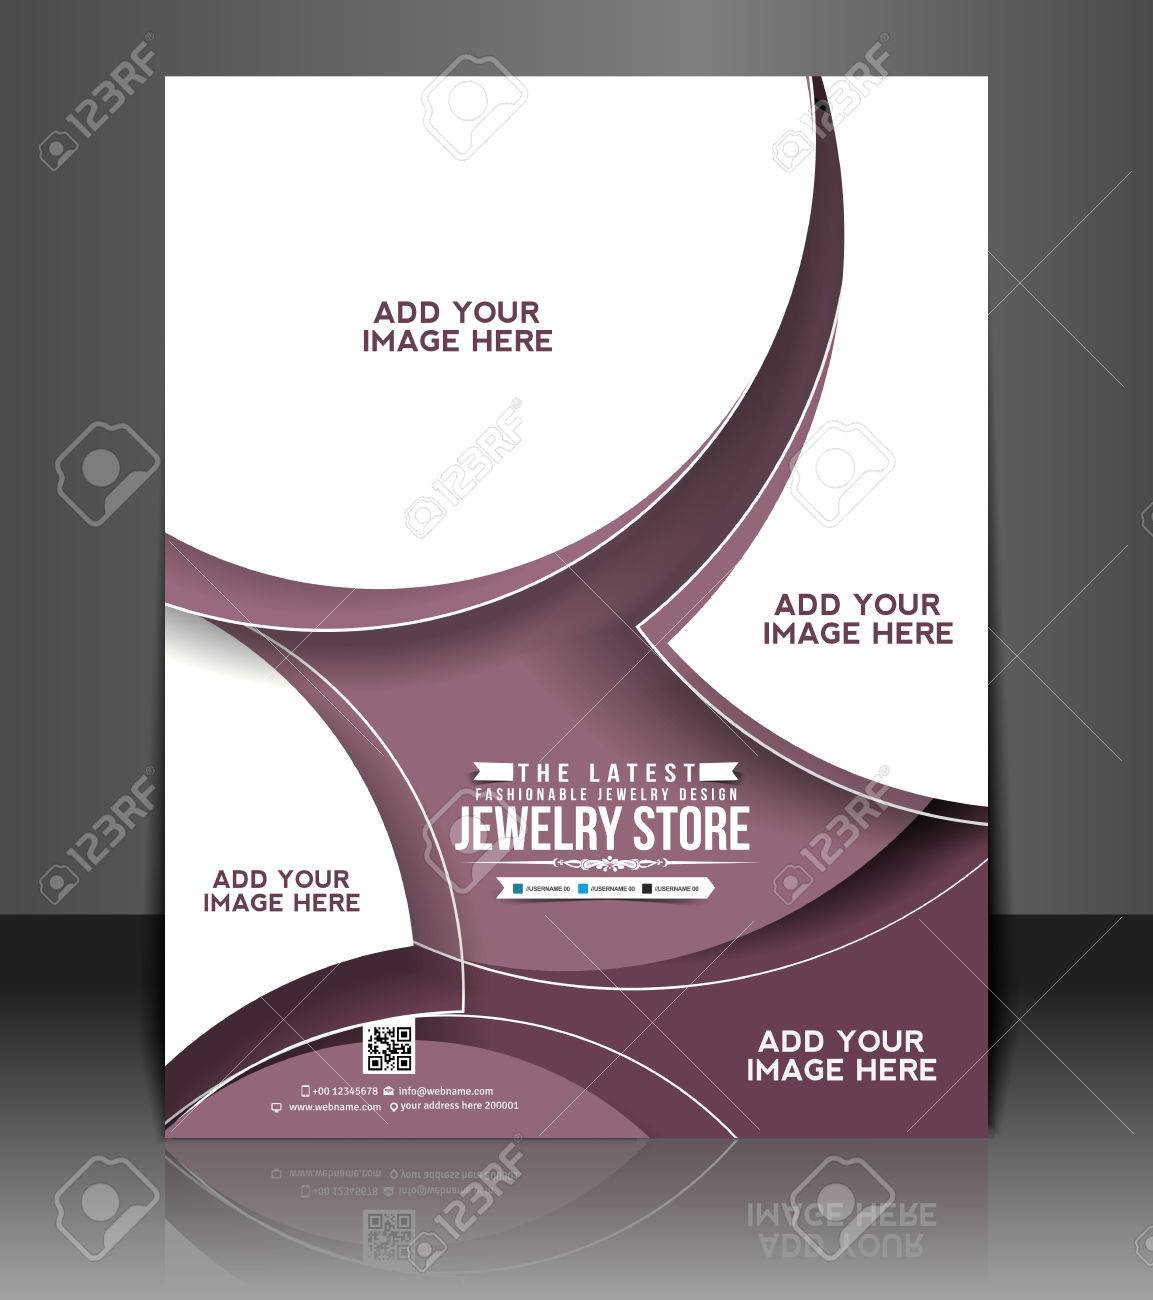 Jewelry Store Flyer & Poster Template Design Royalty Free Cliparts ...